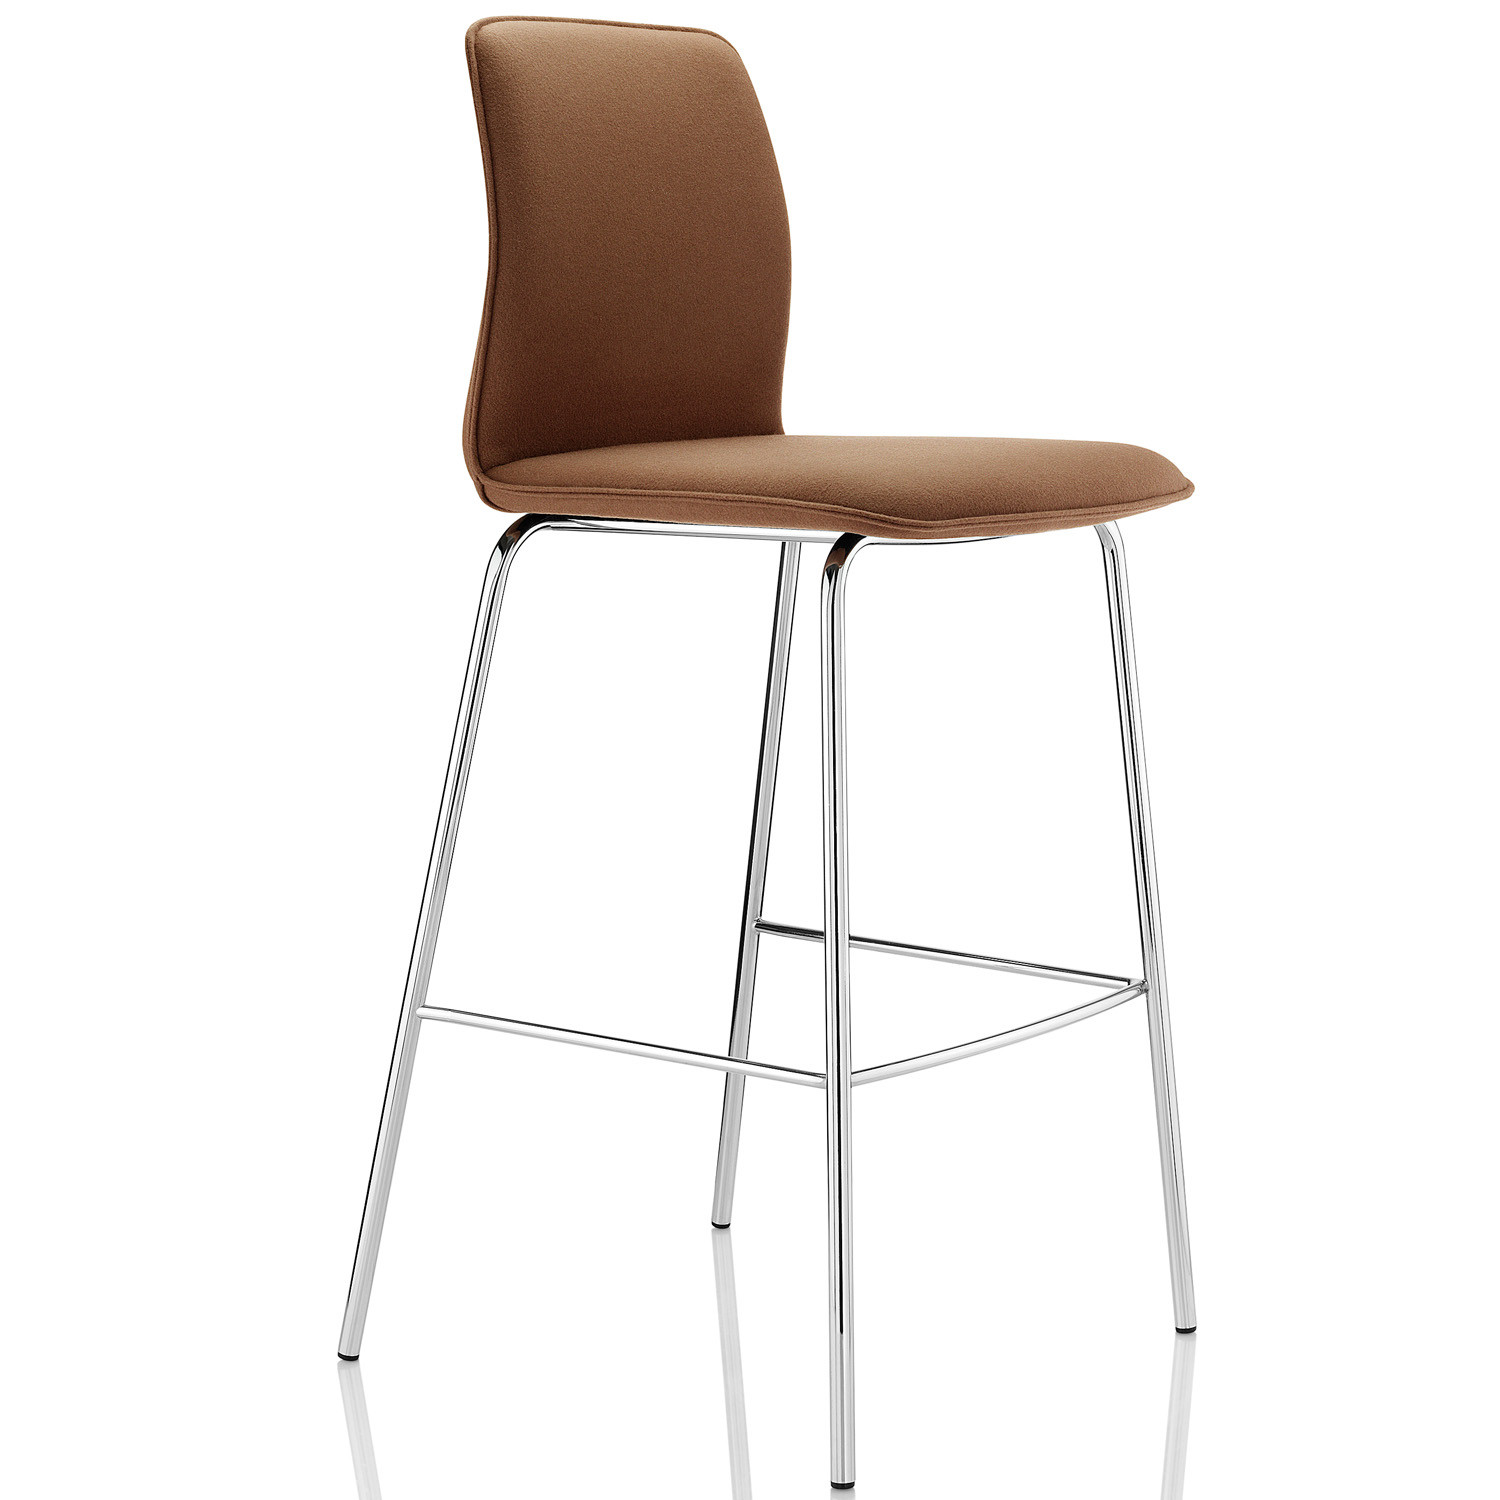 Arran Stool with 4-Legged Base by Boss Design